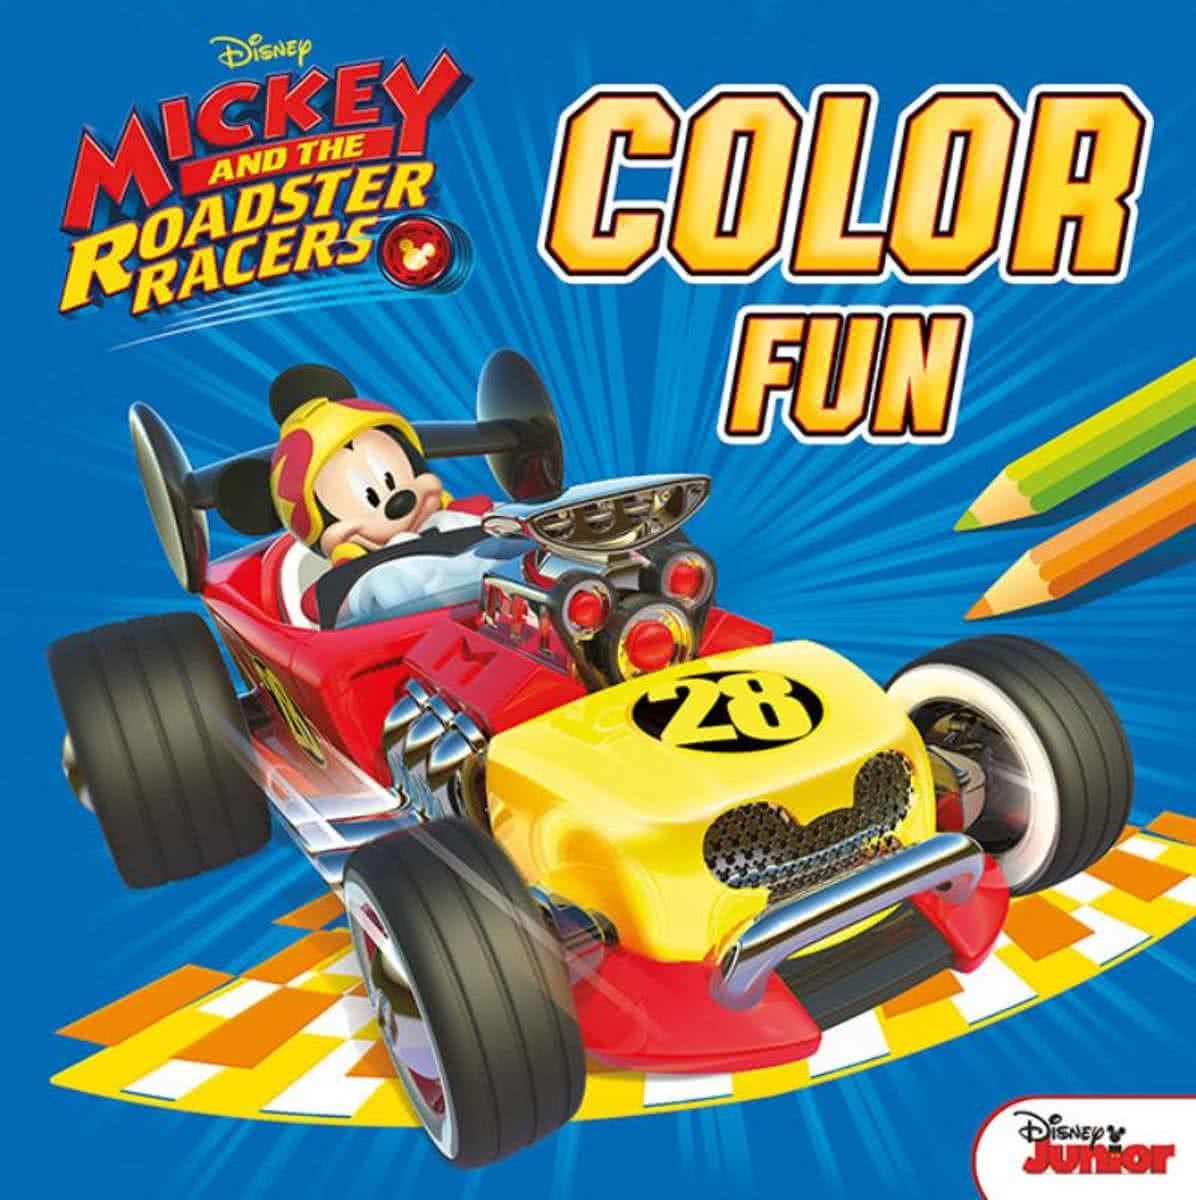 Disney color fun Mickey and the roadster racers